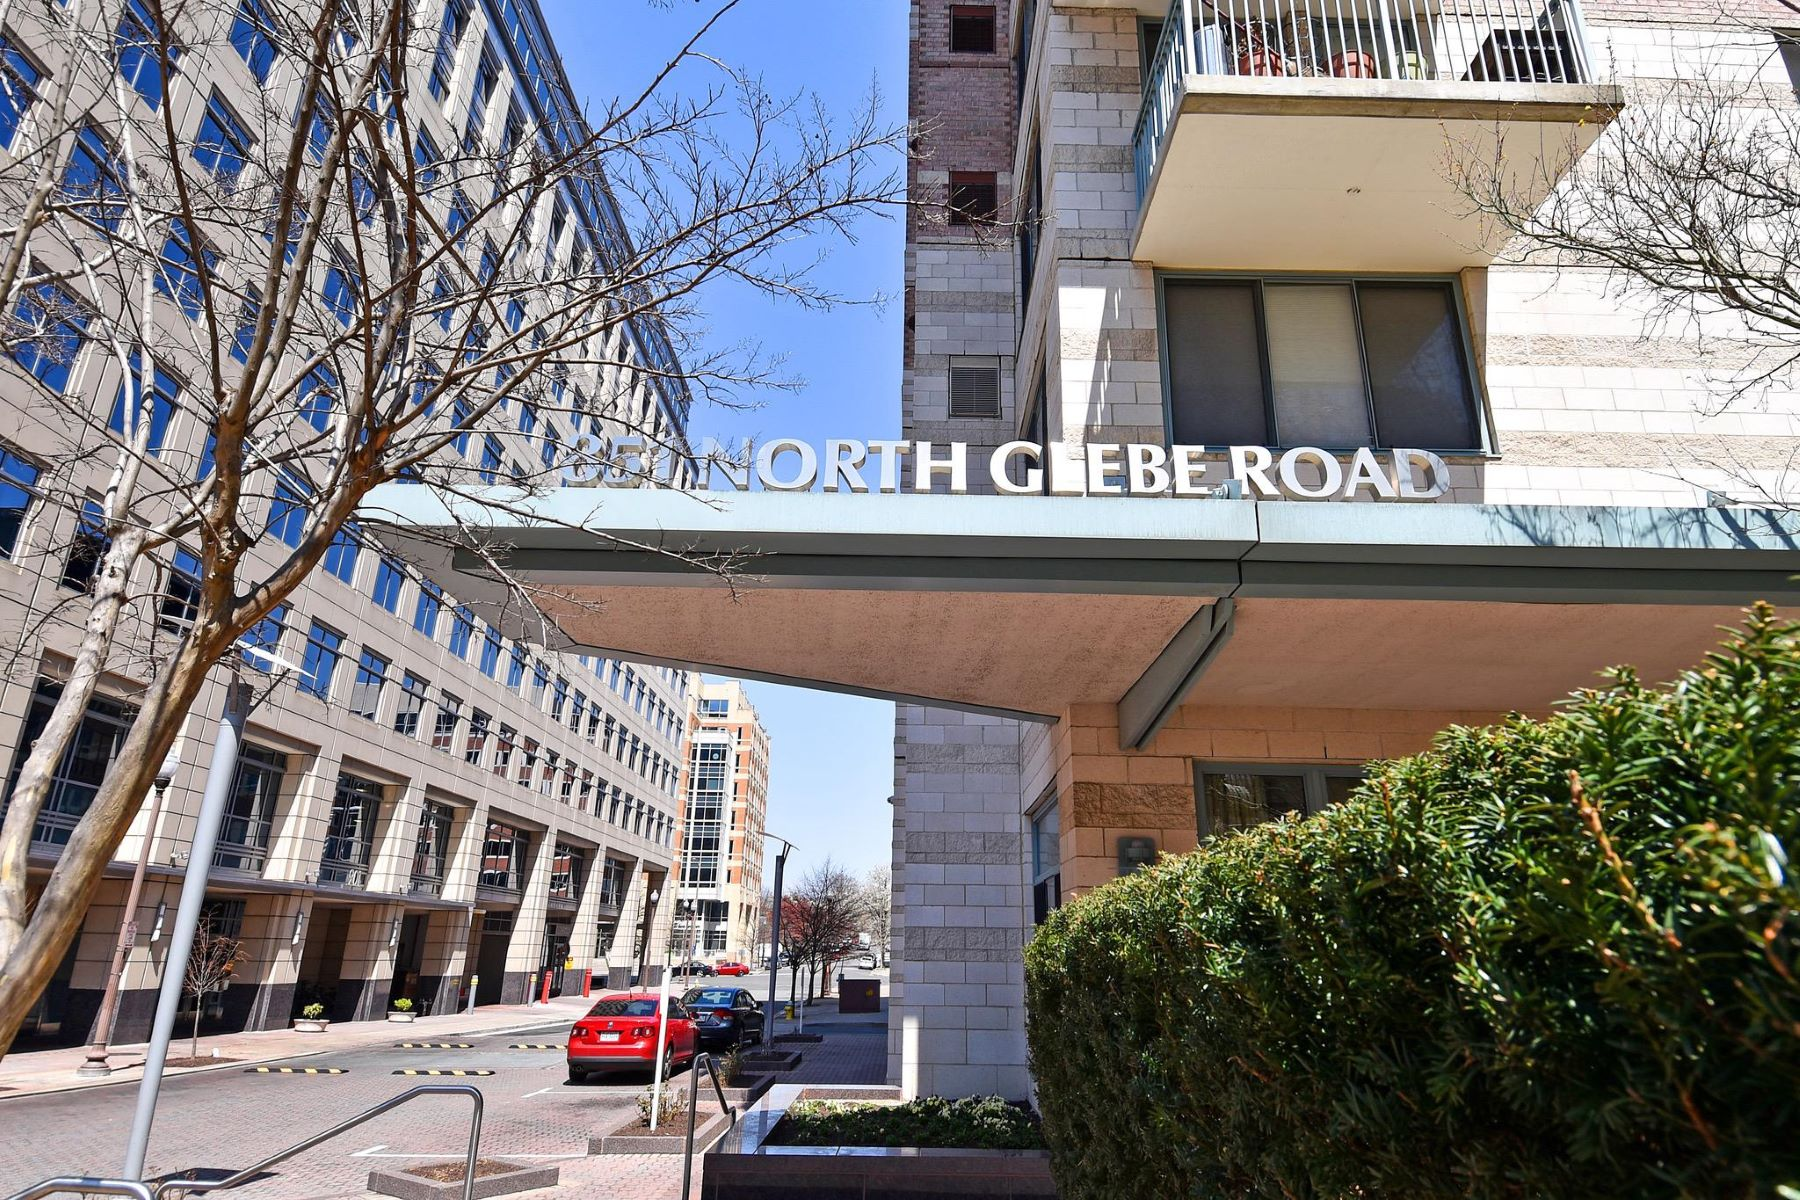 Other Residential for Rent at 851 N Glebe Rd #1516 Arlington, Virginia 22203 United States